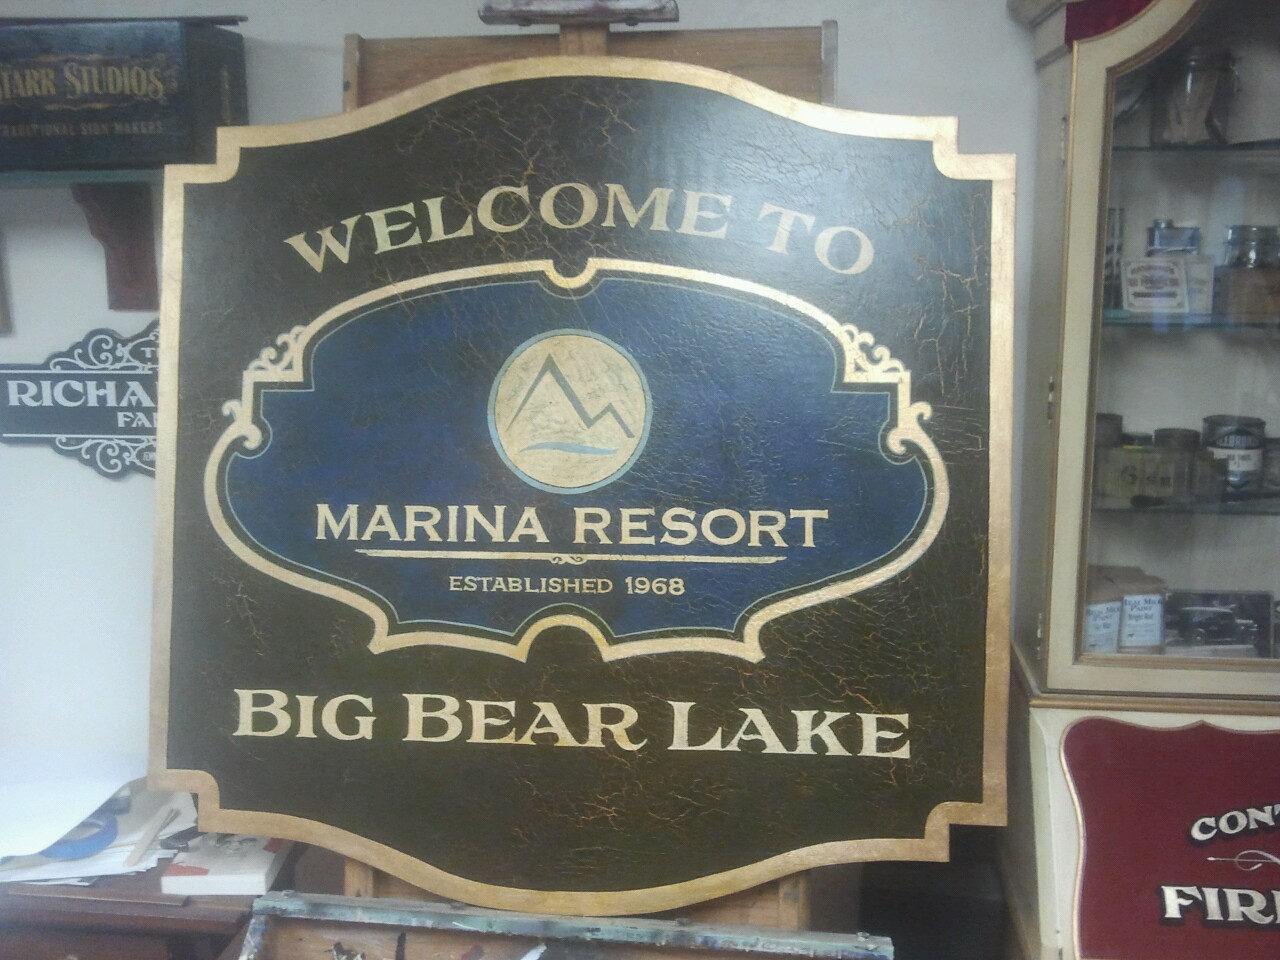 Antiqued gold leaf sign we just finished yesterday for Marina Resort in Big Bear Lake, California. This is going in their lobby above the reception desk.